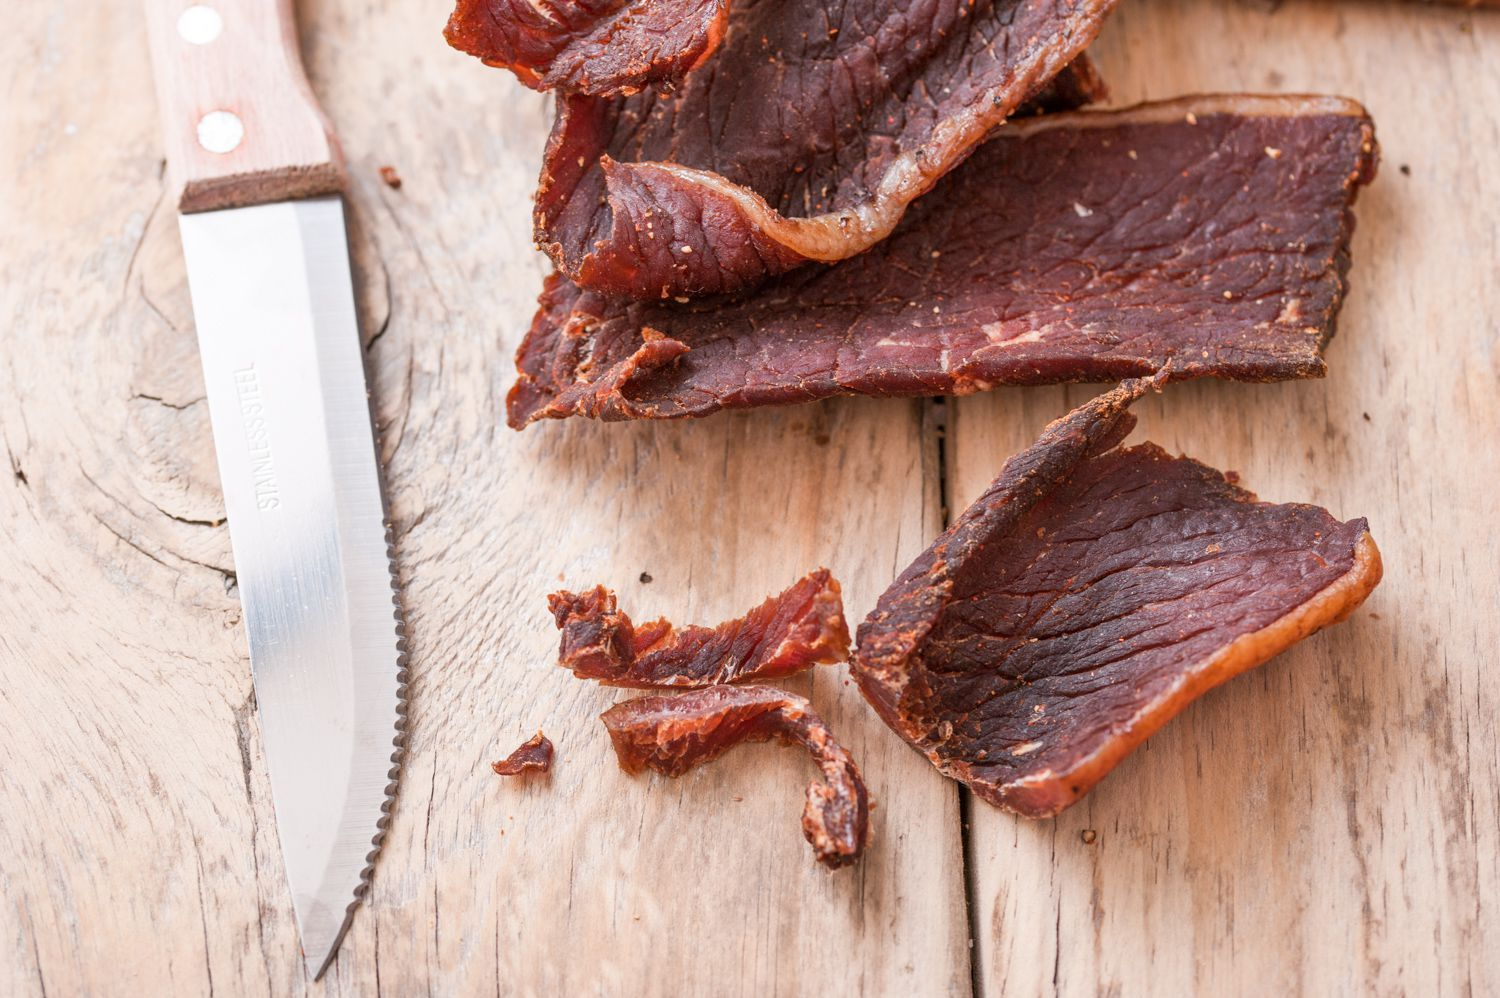 How To Make Authentic Beef Jerky In The Oven Recipe Jerky Recipes Beef Jerky Recipes Oven Jerky